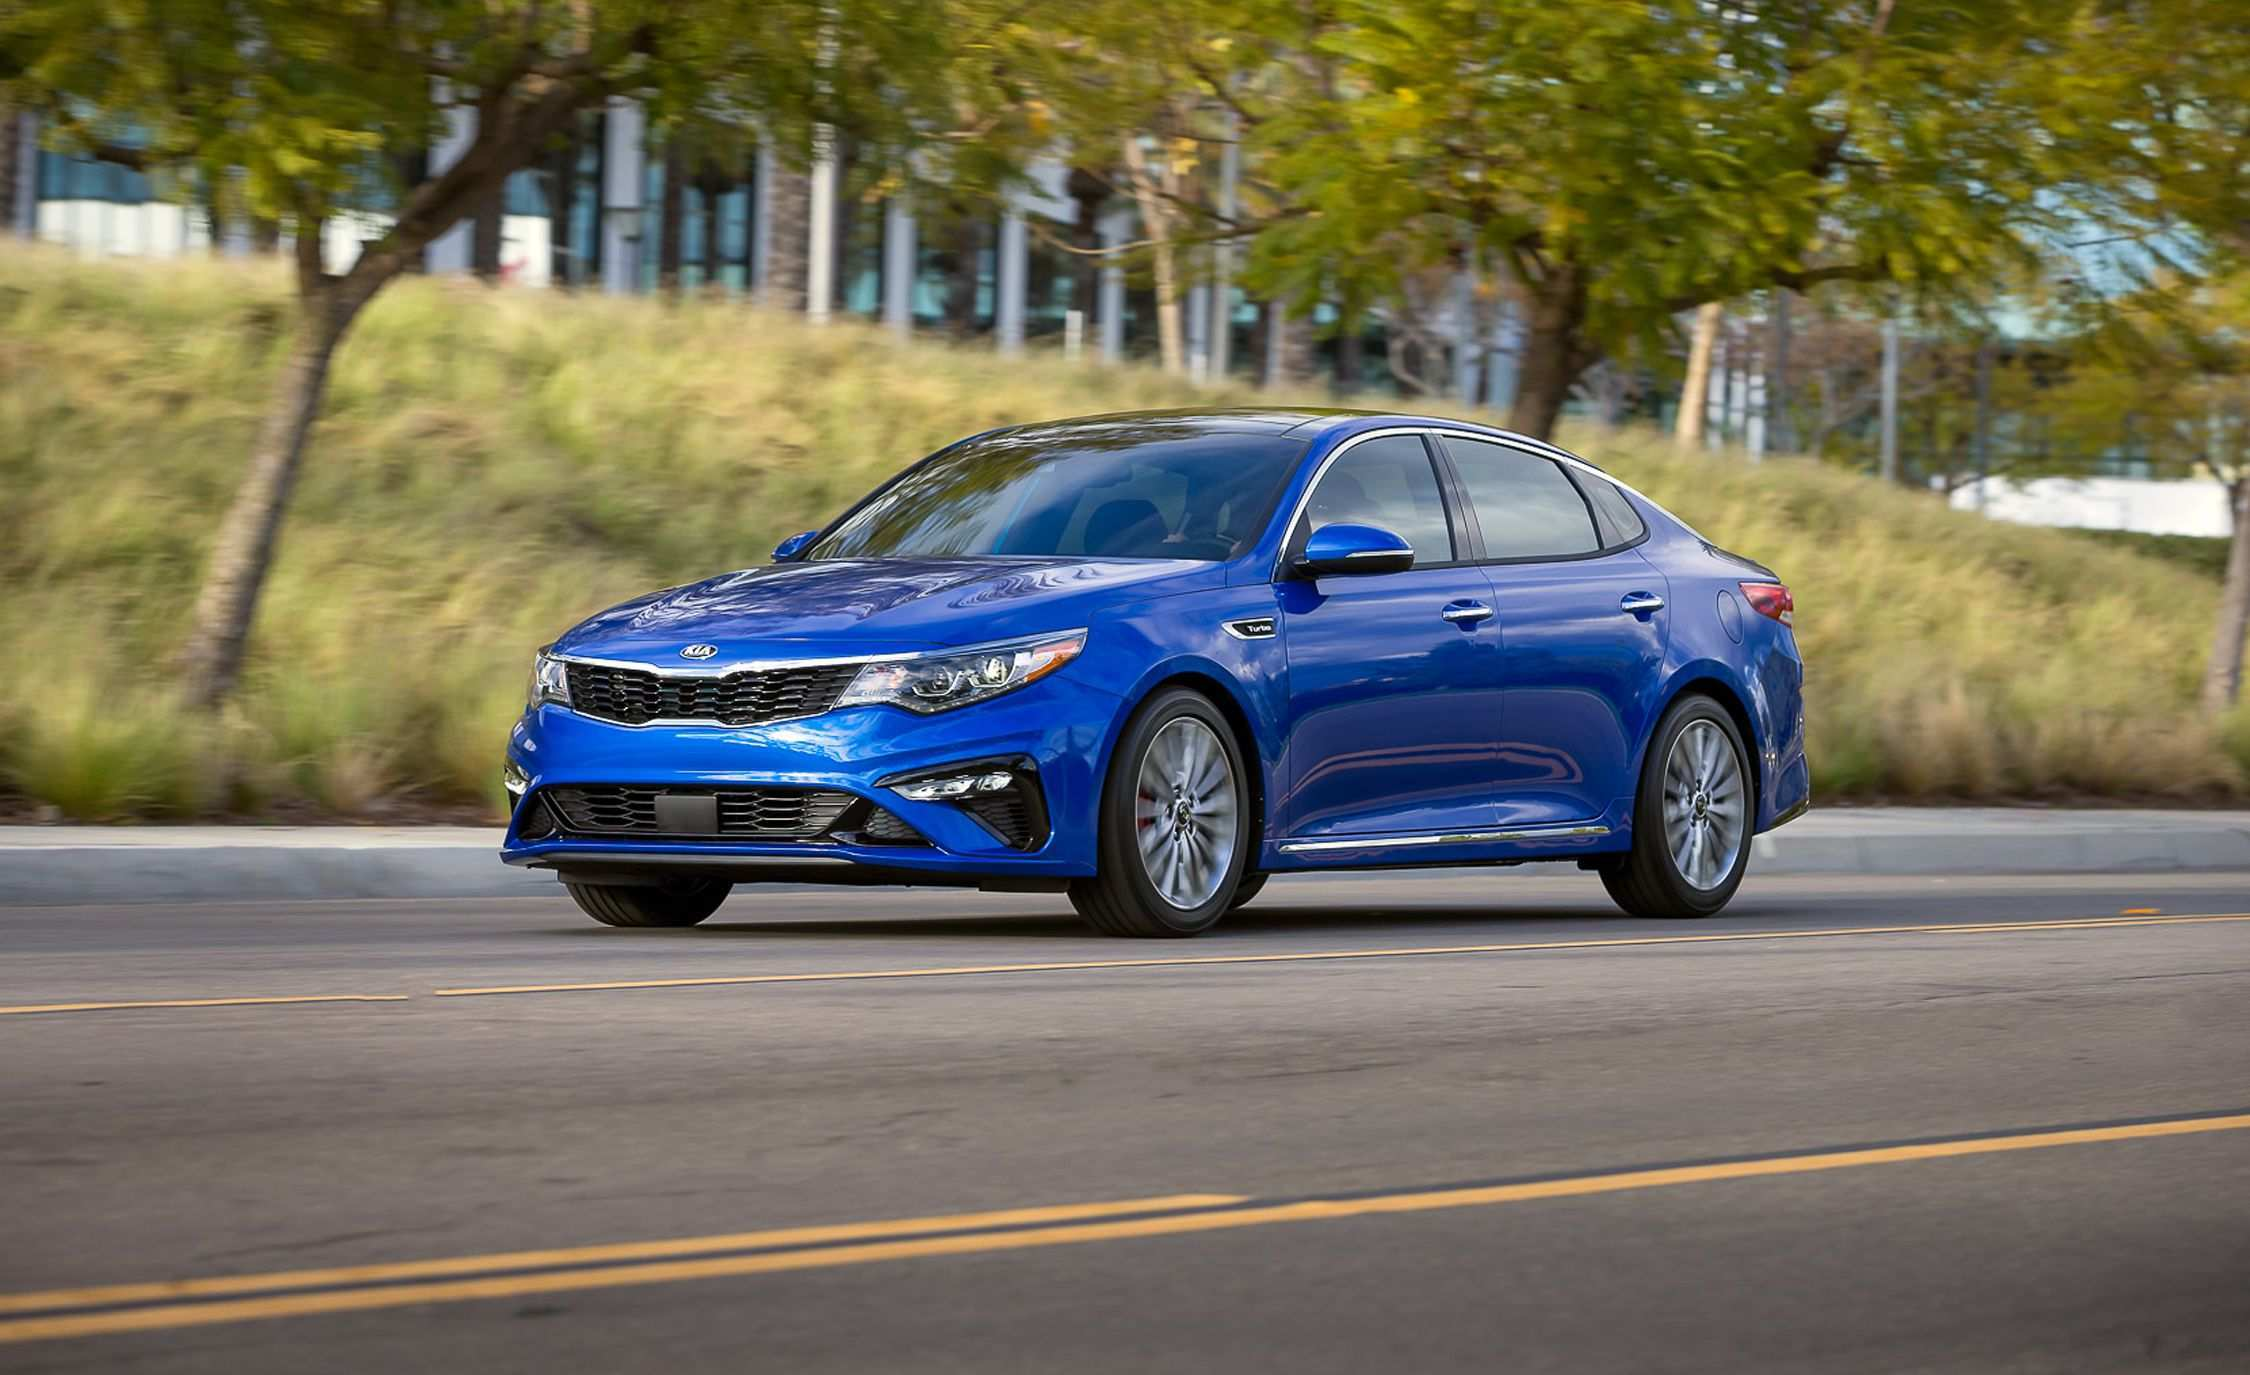 30 Best Review Kia K5 2019 Configurations by Kia K5 2019